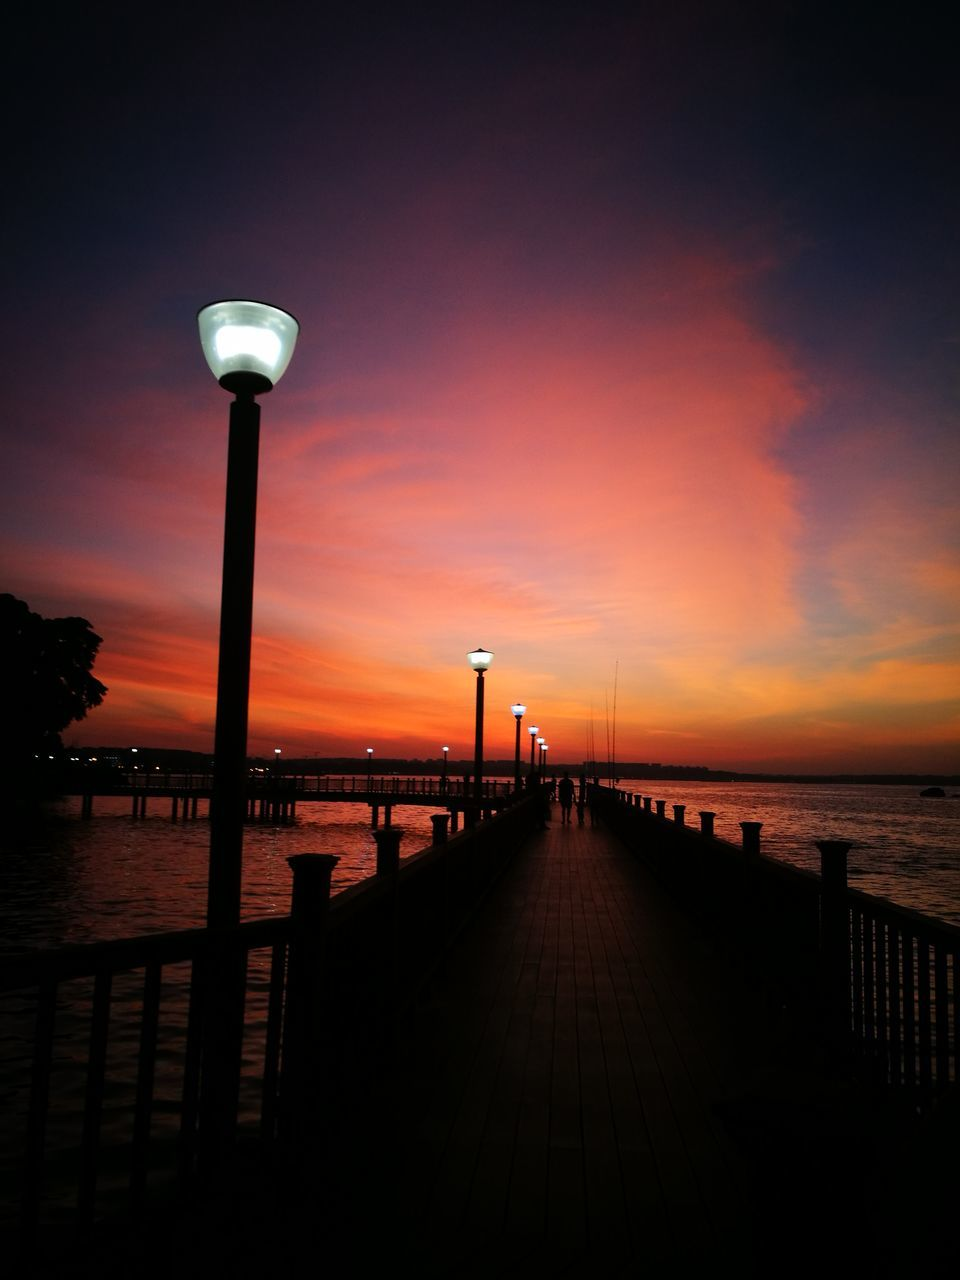 sea, sunset, water, railing, tranquil scene, beauty in nature, horizon over water, pier, nature, scenics, beach, sky, street light, tranquility, silhouette, jetty, outdoors, travel destinations, built structure, no people, architecture, day